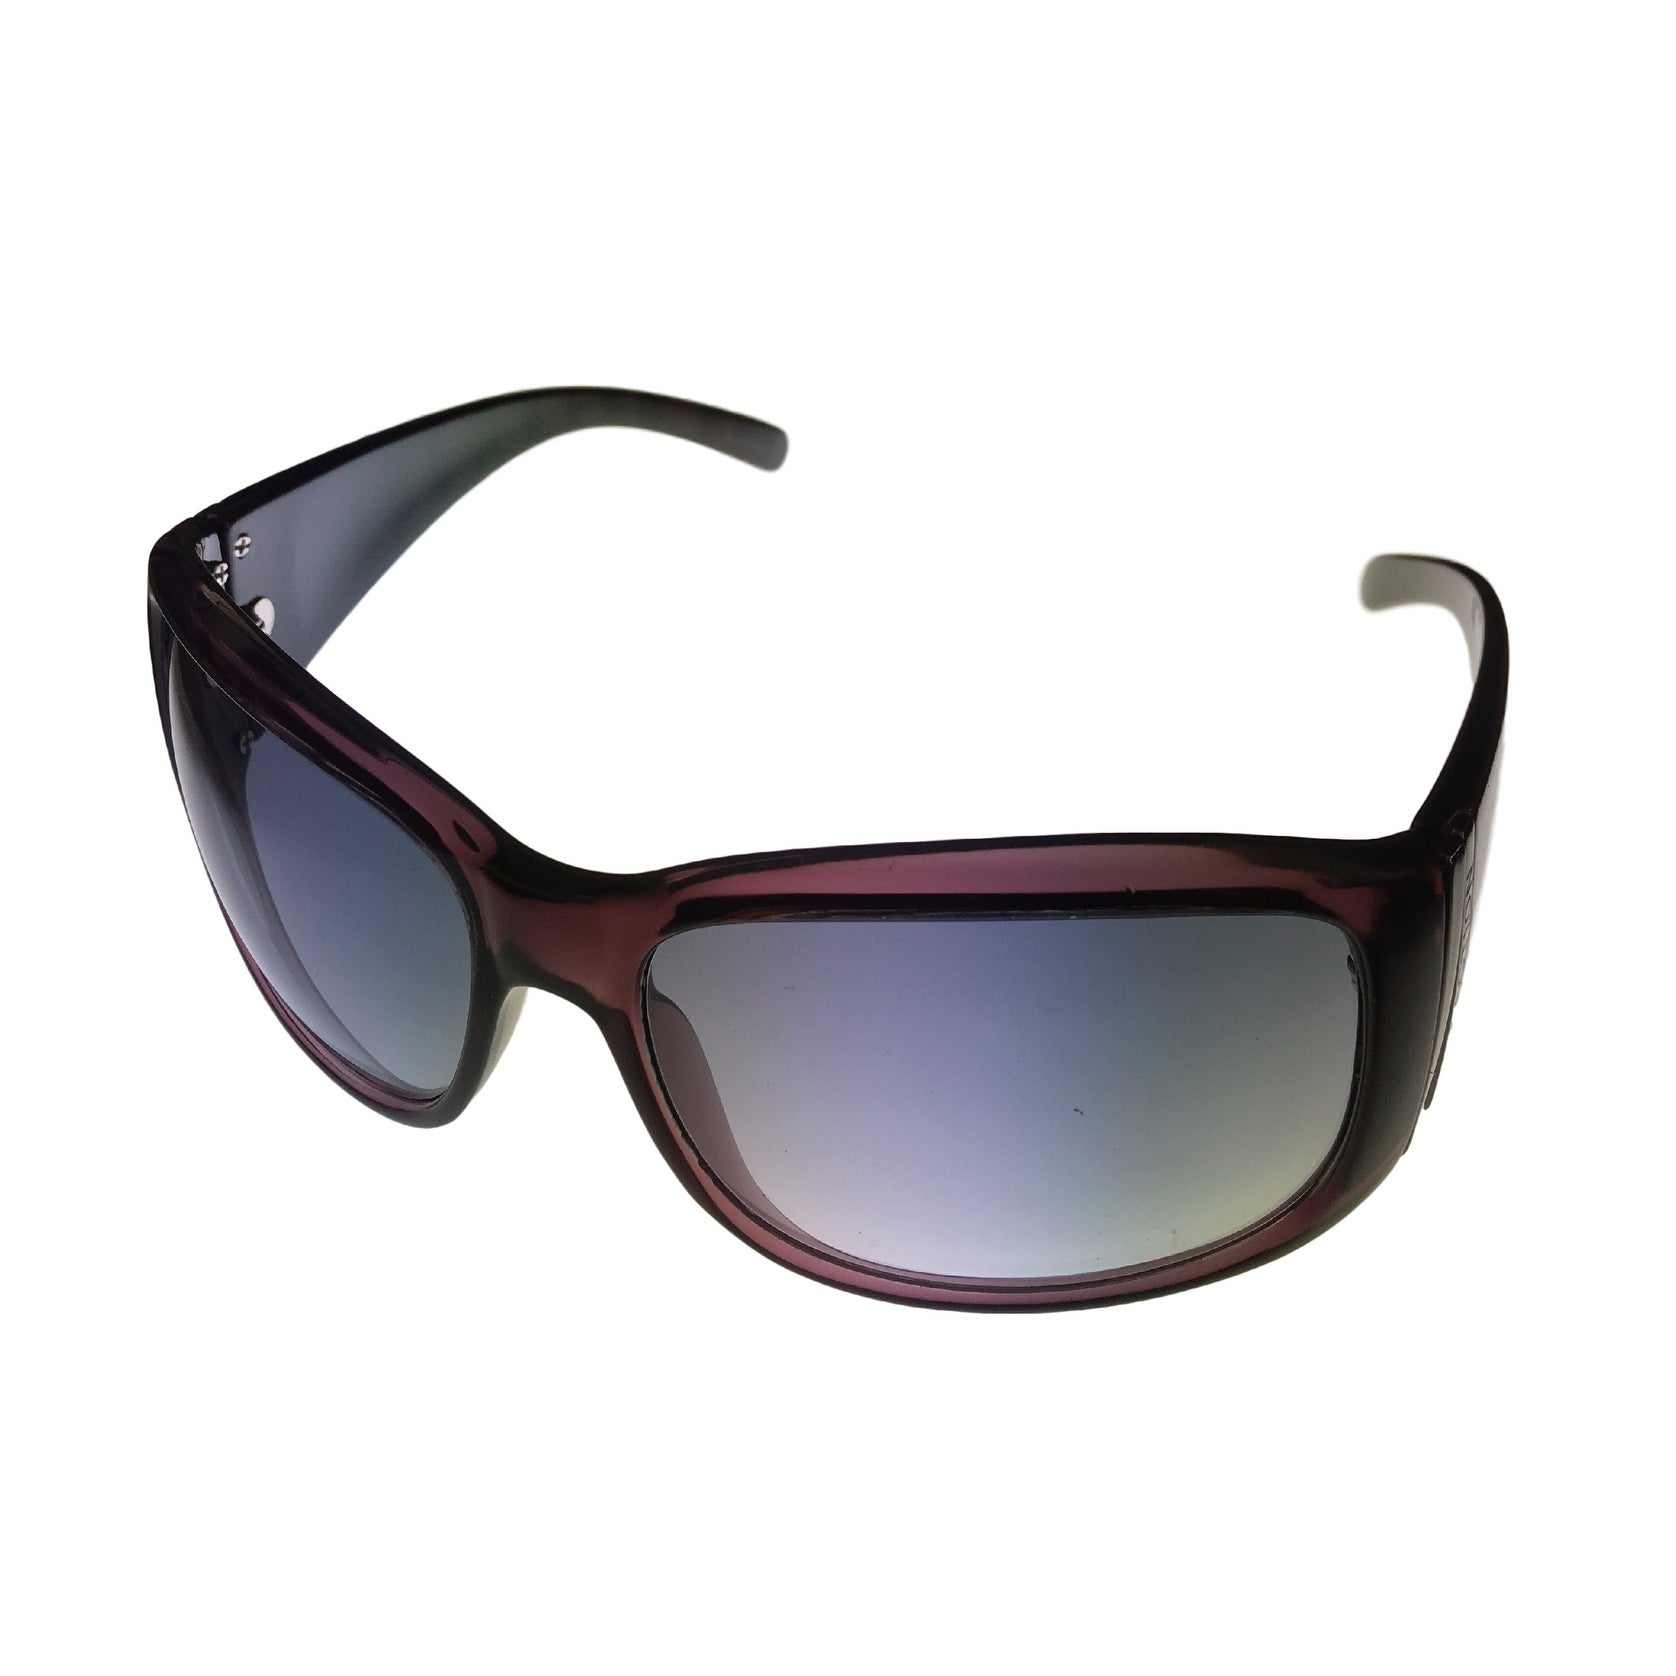 Kenneth Cole Reaction Women Sunglass Purple Reactangle, Gradient Lens KC1156 83B - Medium - Thumbnail 0